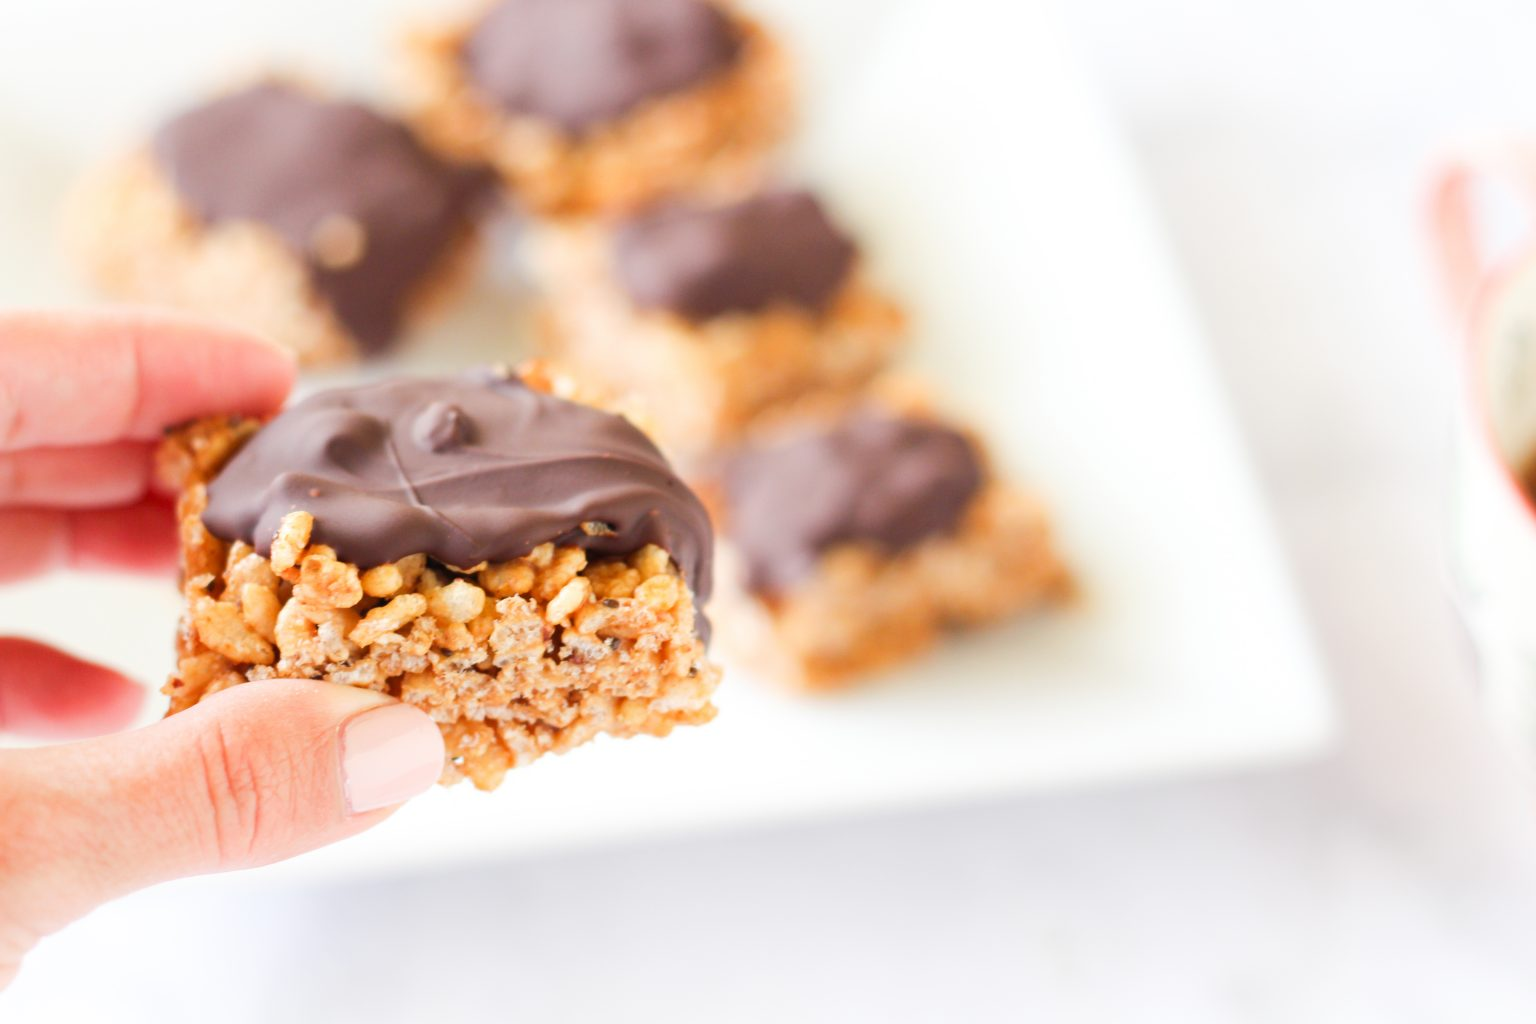 Crunchy Almond Butter Chocolate Bars